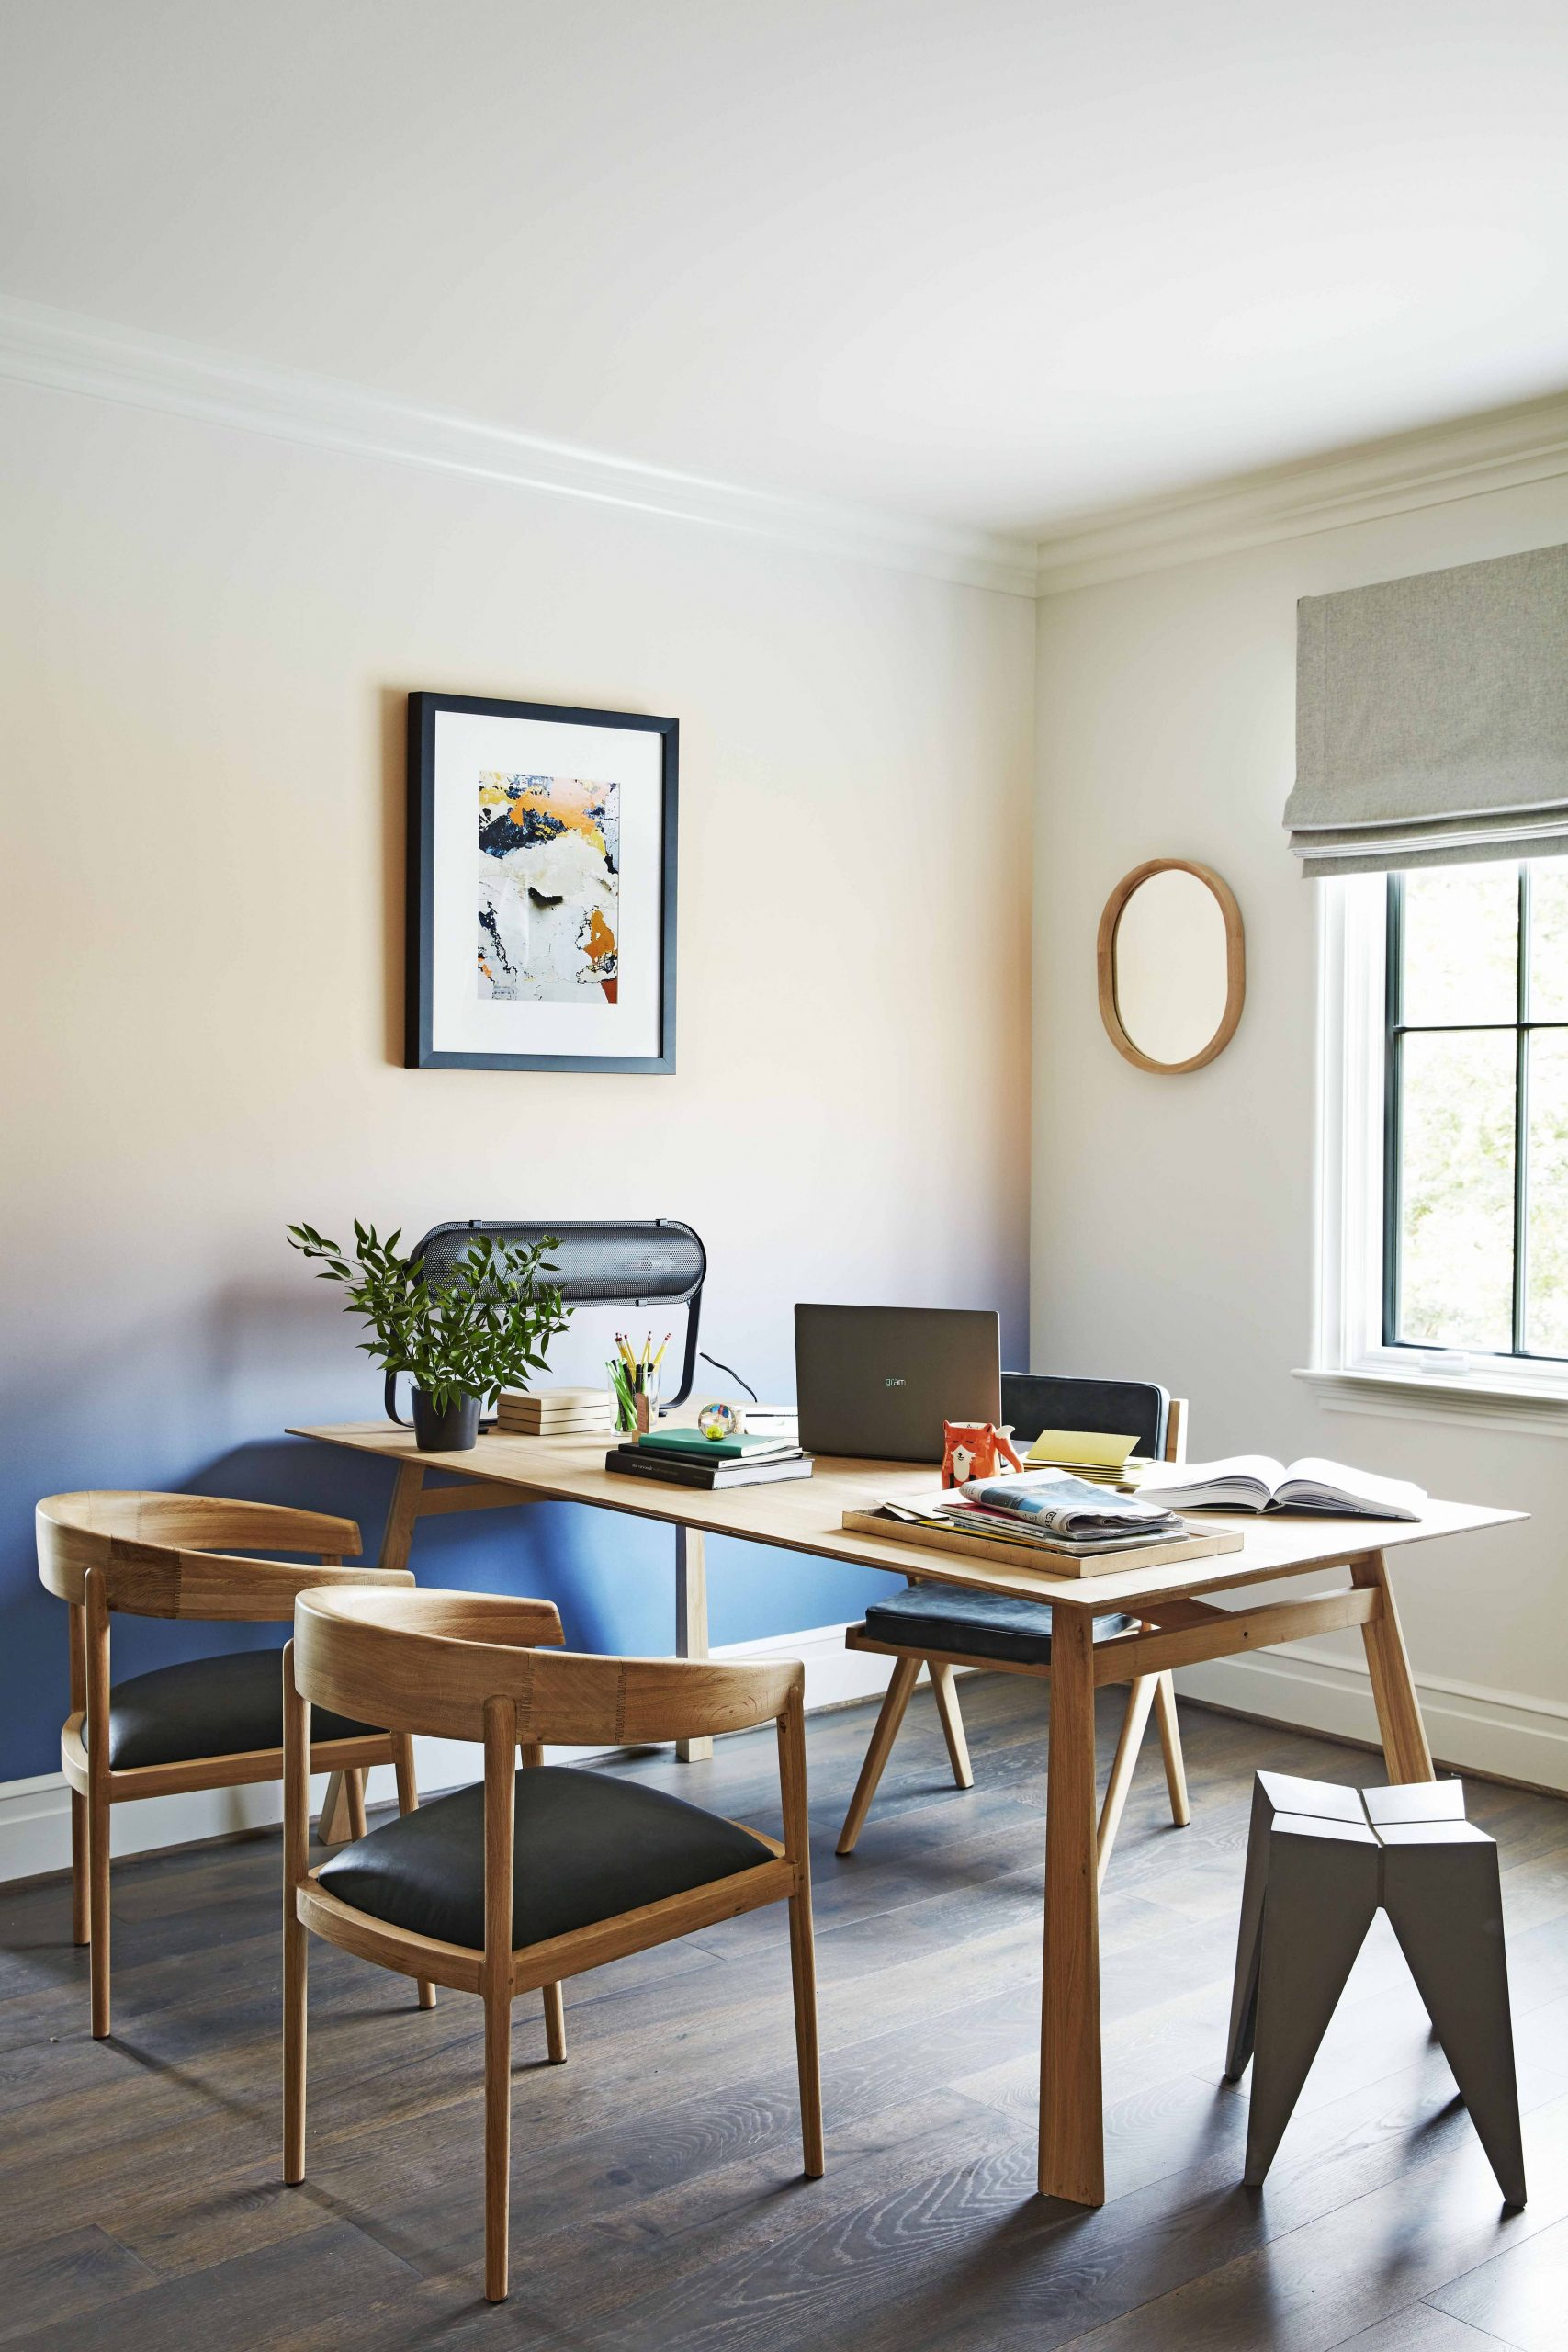 10 Best Home Office Ideas - Home Office Decor Photos - Home Office Ideas In Dining Room